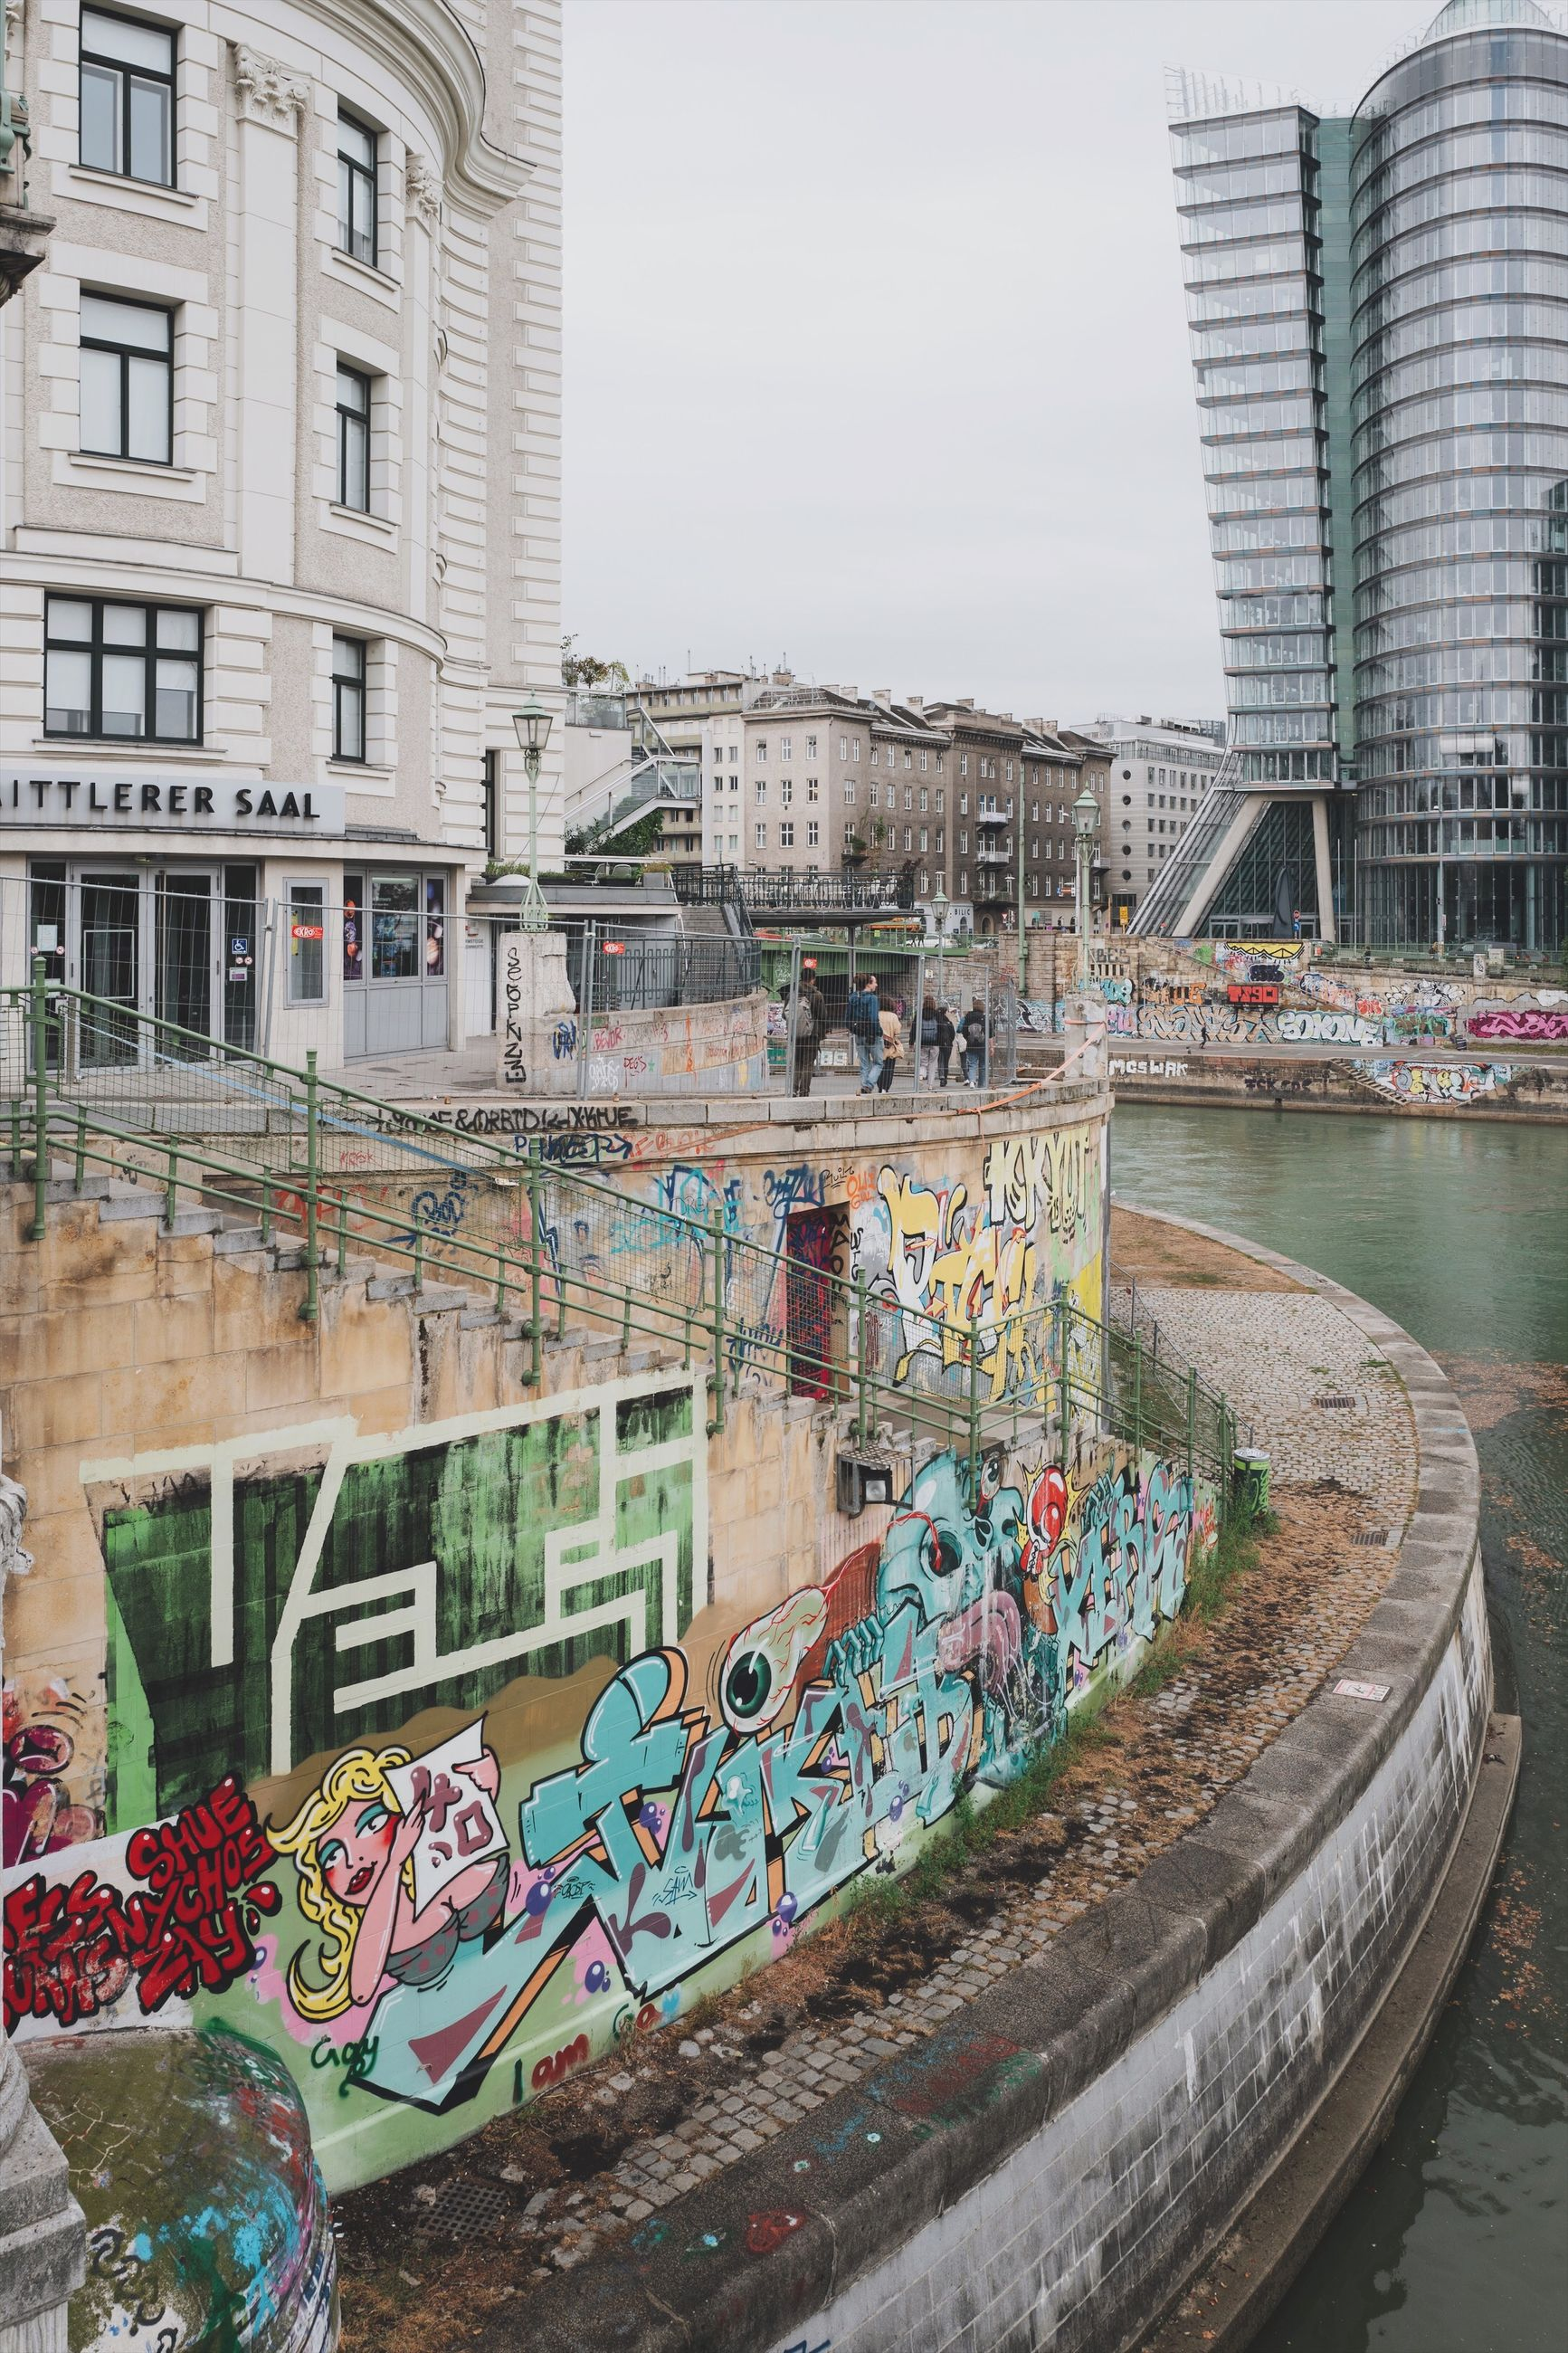 built structure, building exterior, architecture, water, city, graffiti, day, building, nature, creativity, art and craft, multi colored, canal, no people, reflection, outdoors, transportation, sky, city life, office building exterior